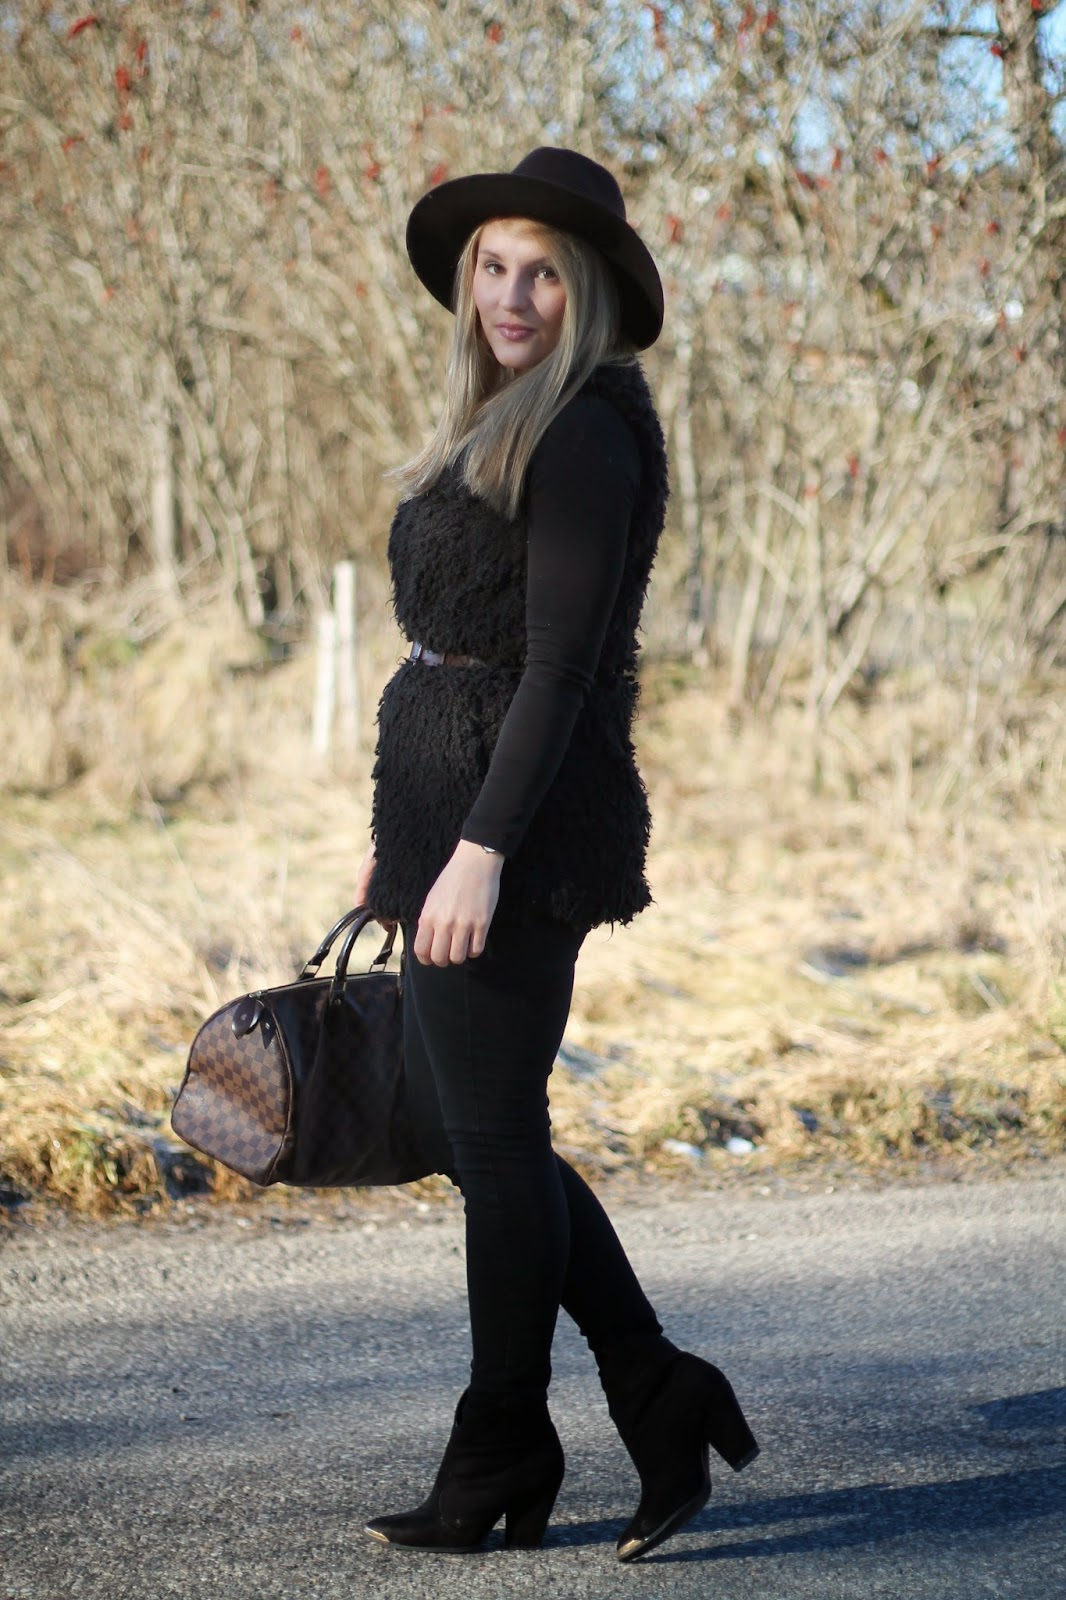 Fashionblogger Austria / Österreich / Deutsch / German / Kärnten / Carinthia / Klagenfurt / Köttmannsdorf / Winter Look / Classy / Edgy / Winter / WInter Style 2014 / Winter Look / Fashionista Look / Streetstyle Klagenfurt Vienna Wien Austria / /Winter Outfit / Black Outfit / Black Lammfellweste Fake Fur Vest / Brown Hat bRauner Hut Forever 21 / Louis Vuitton Damier Ebene Speedy 25 / Boots Ann Christine // Daniel Wellington Uhr /